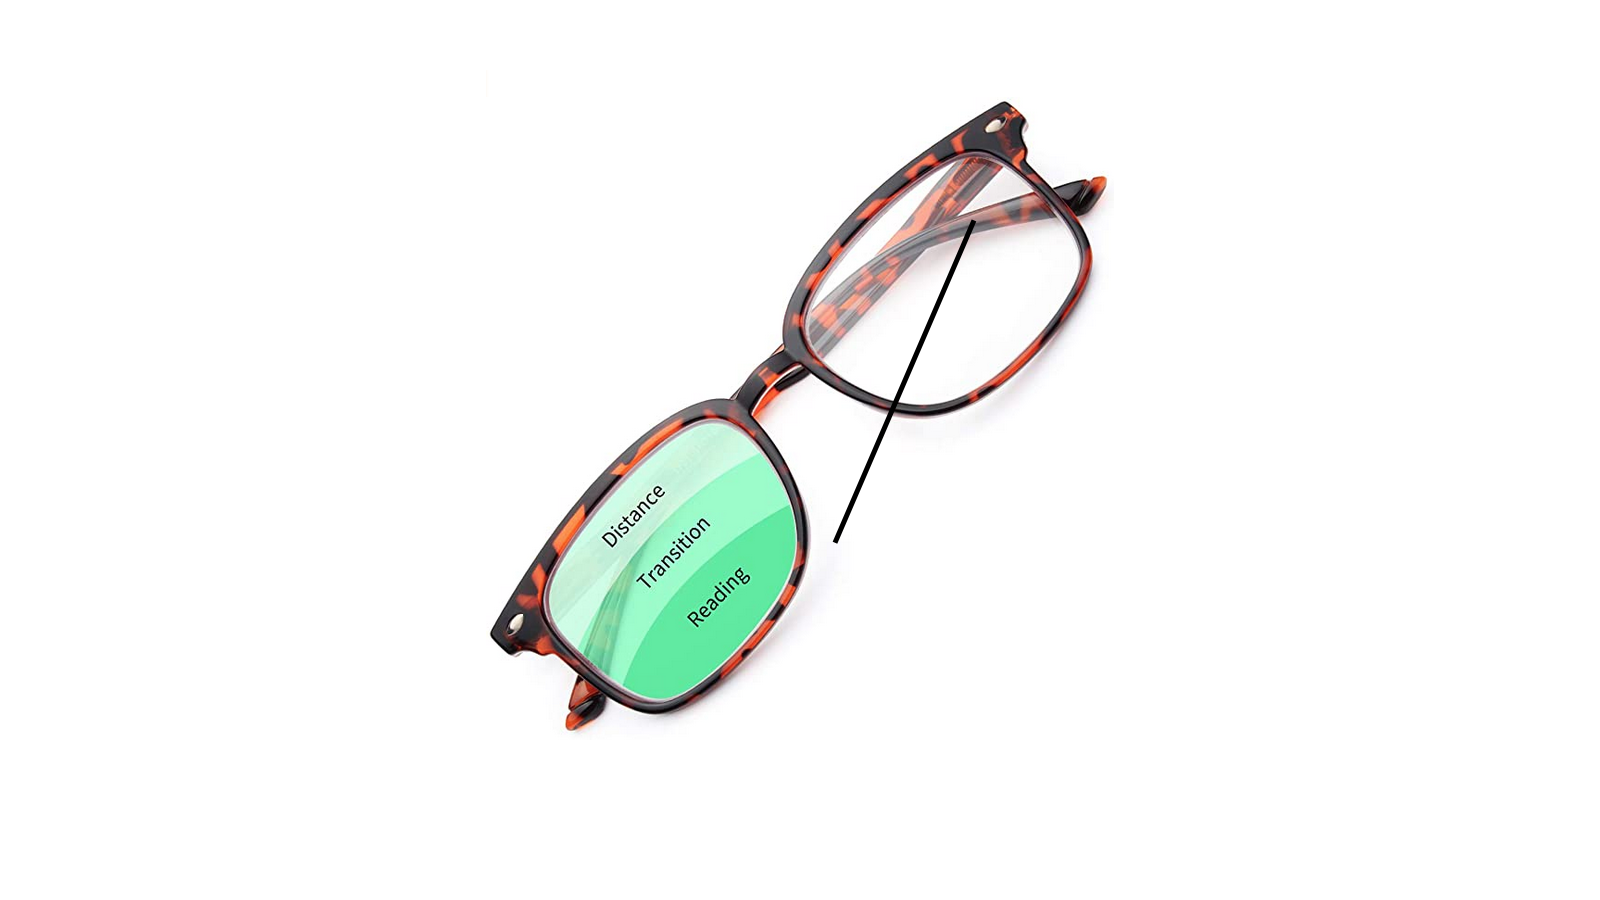 Pair of multifocal glasses with words -distance, transition, and reading to show different focus points